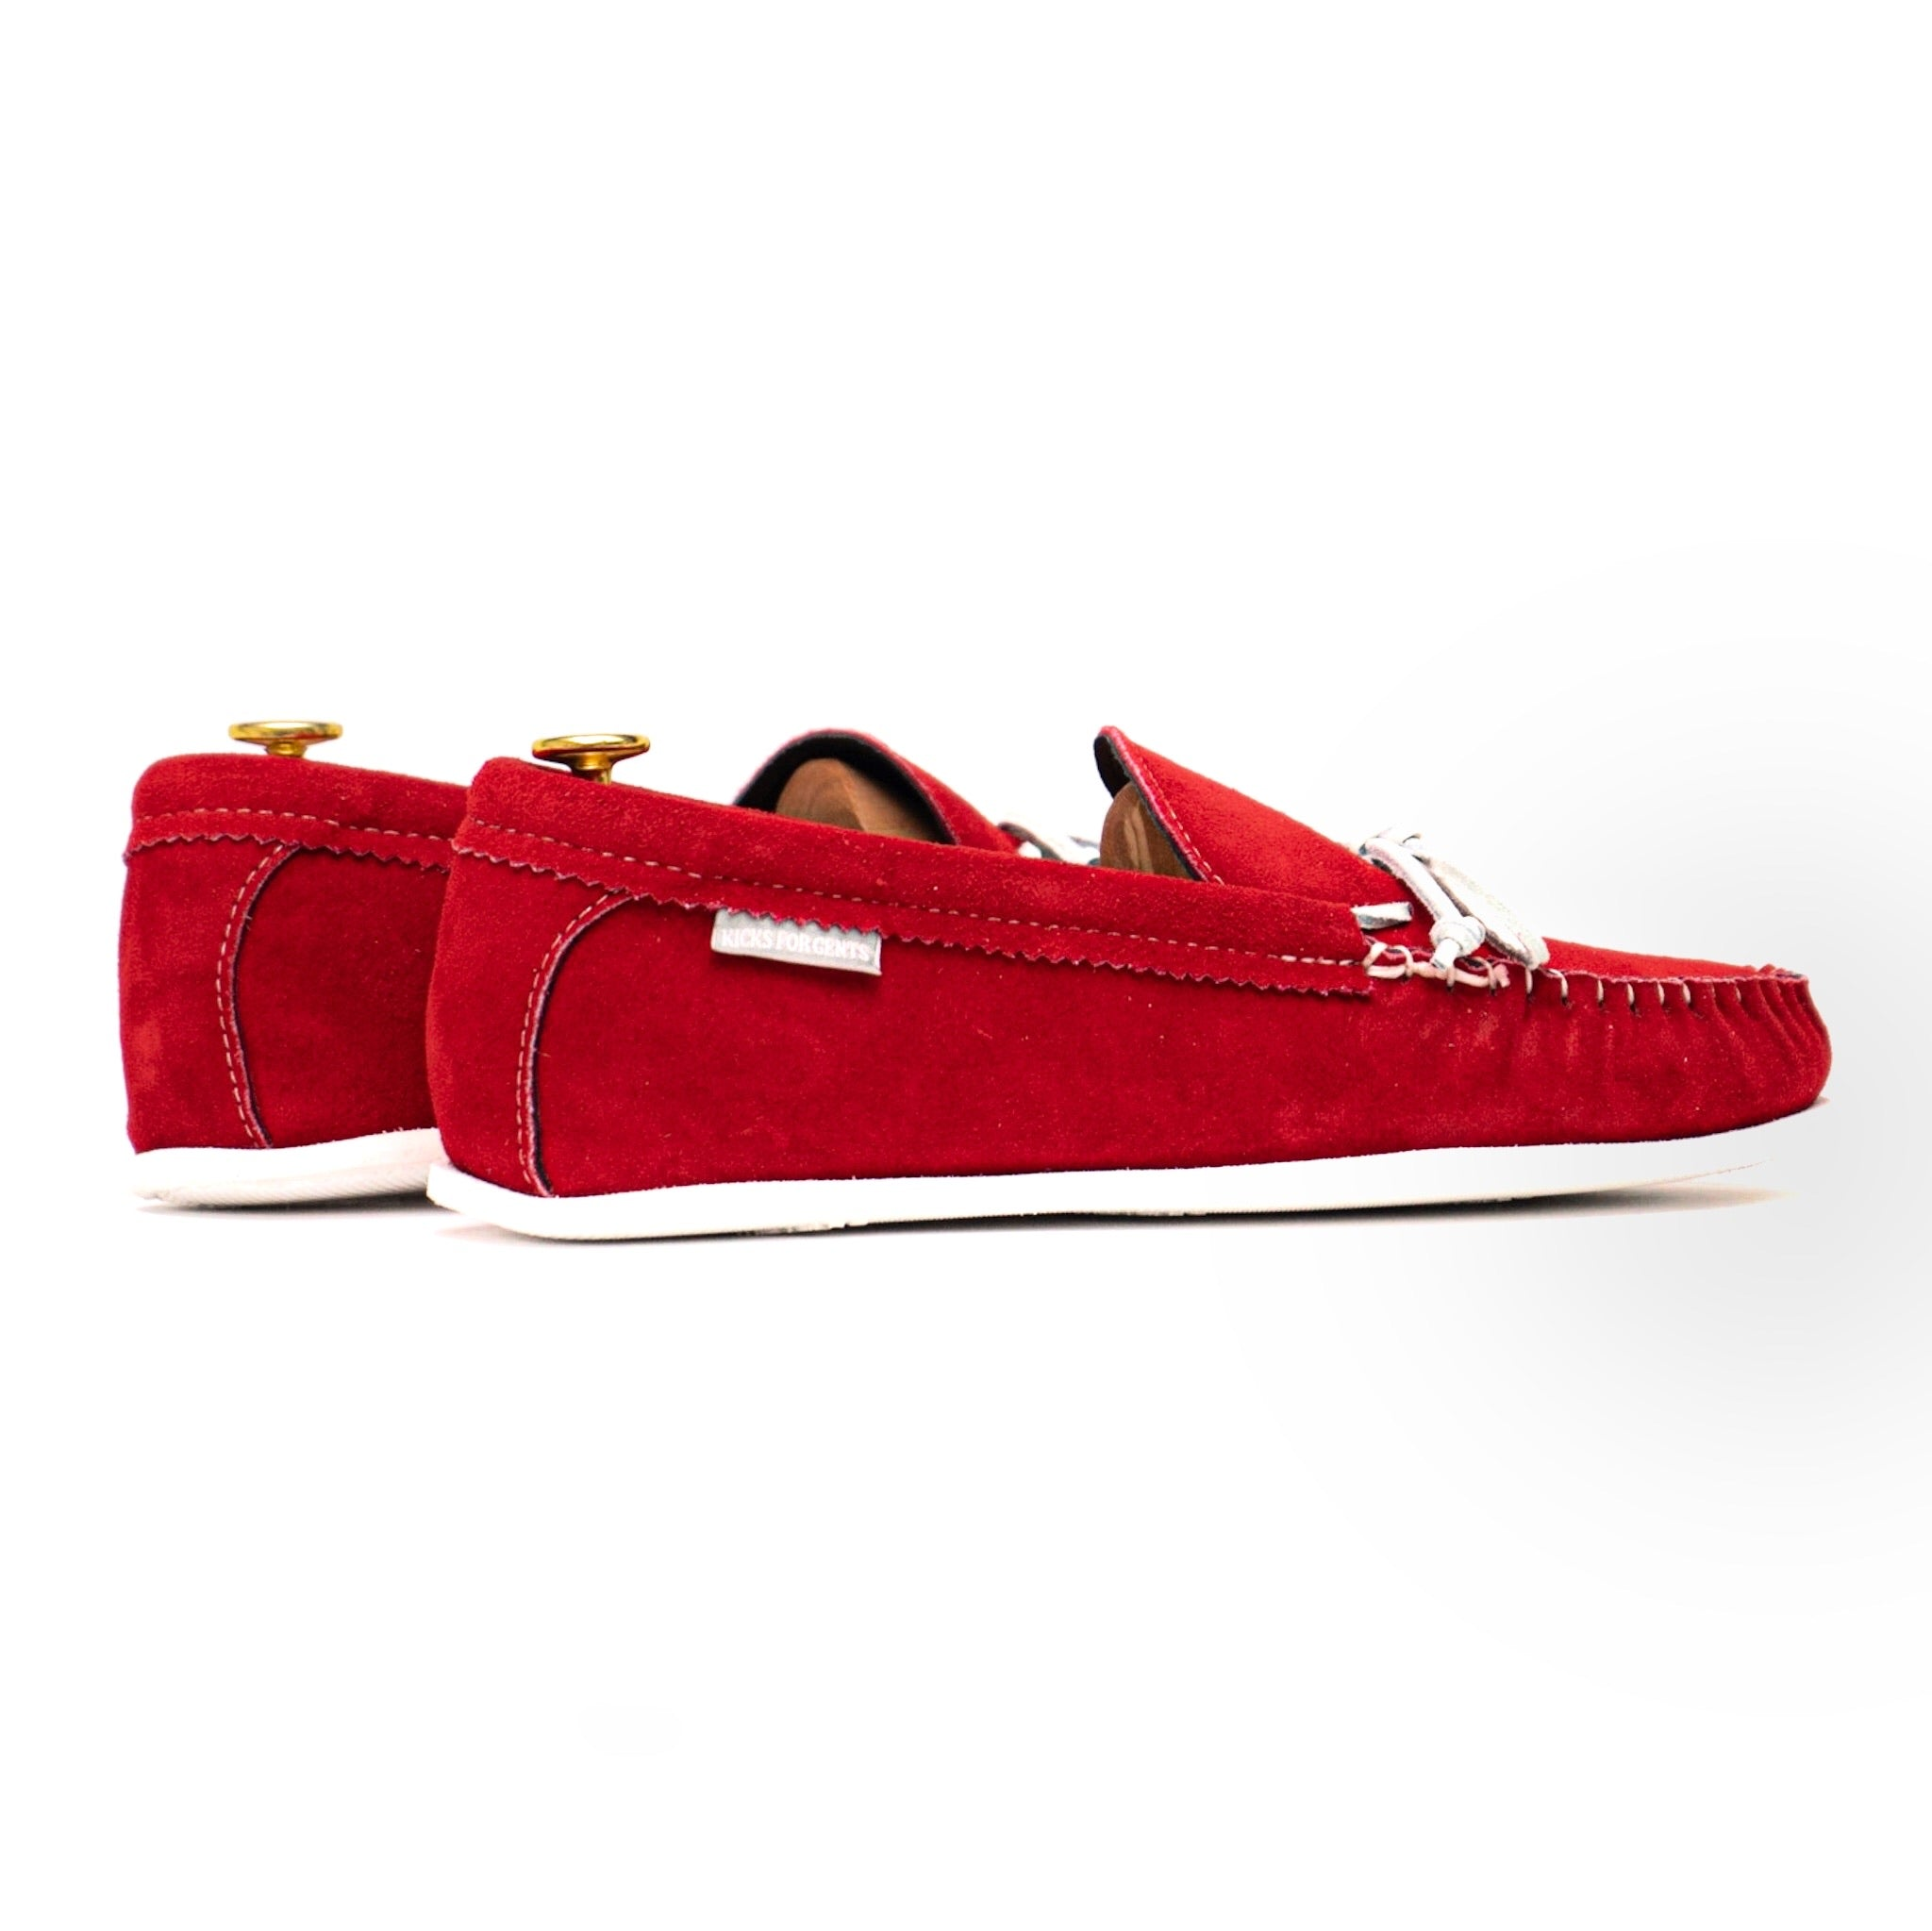 Spring Grove USA Moccasins - Red Suede